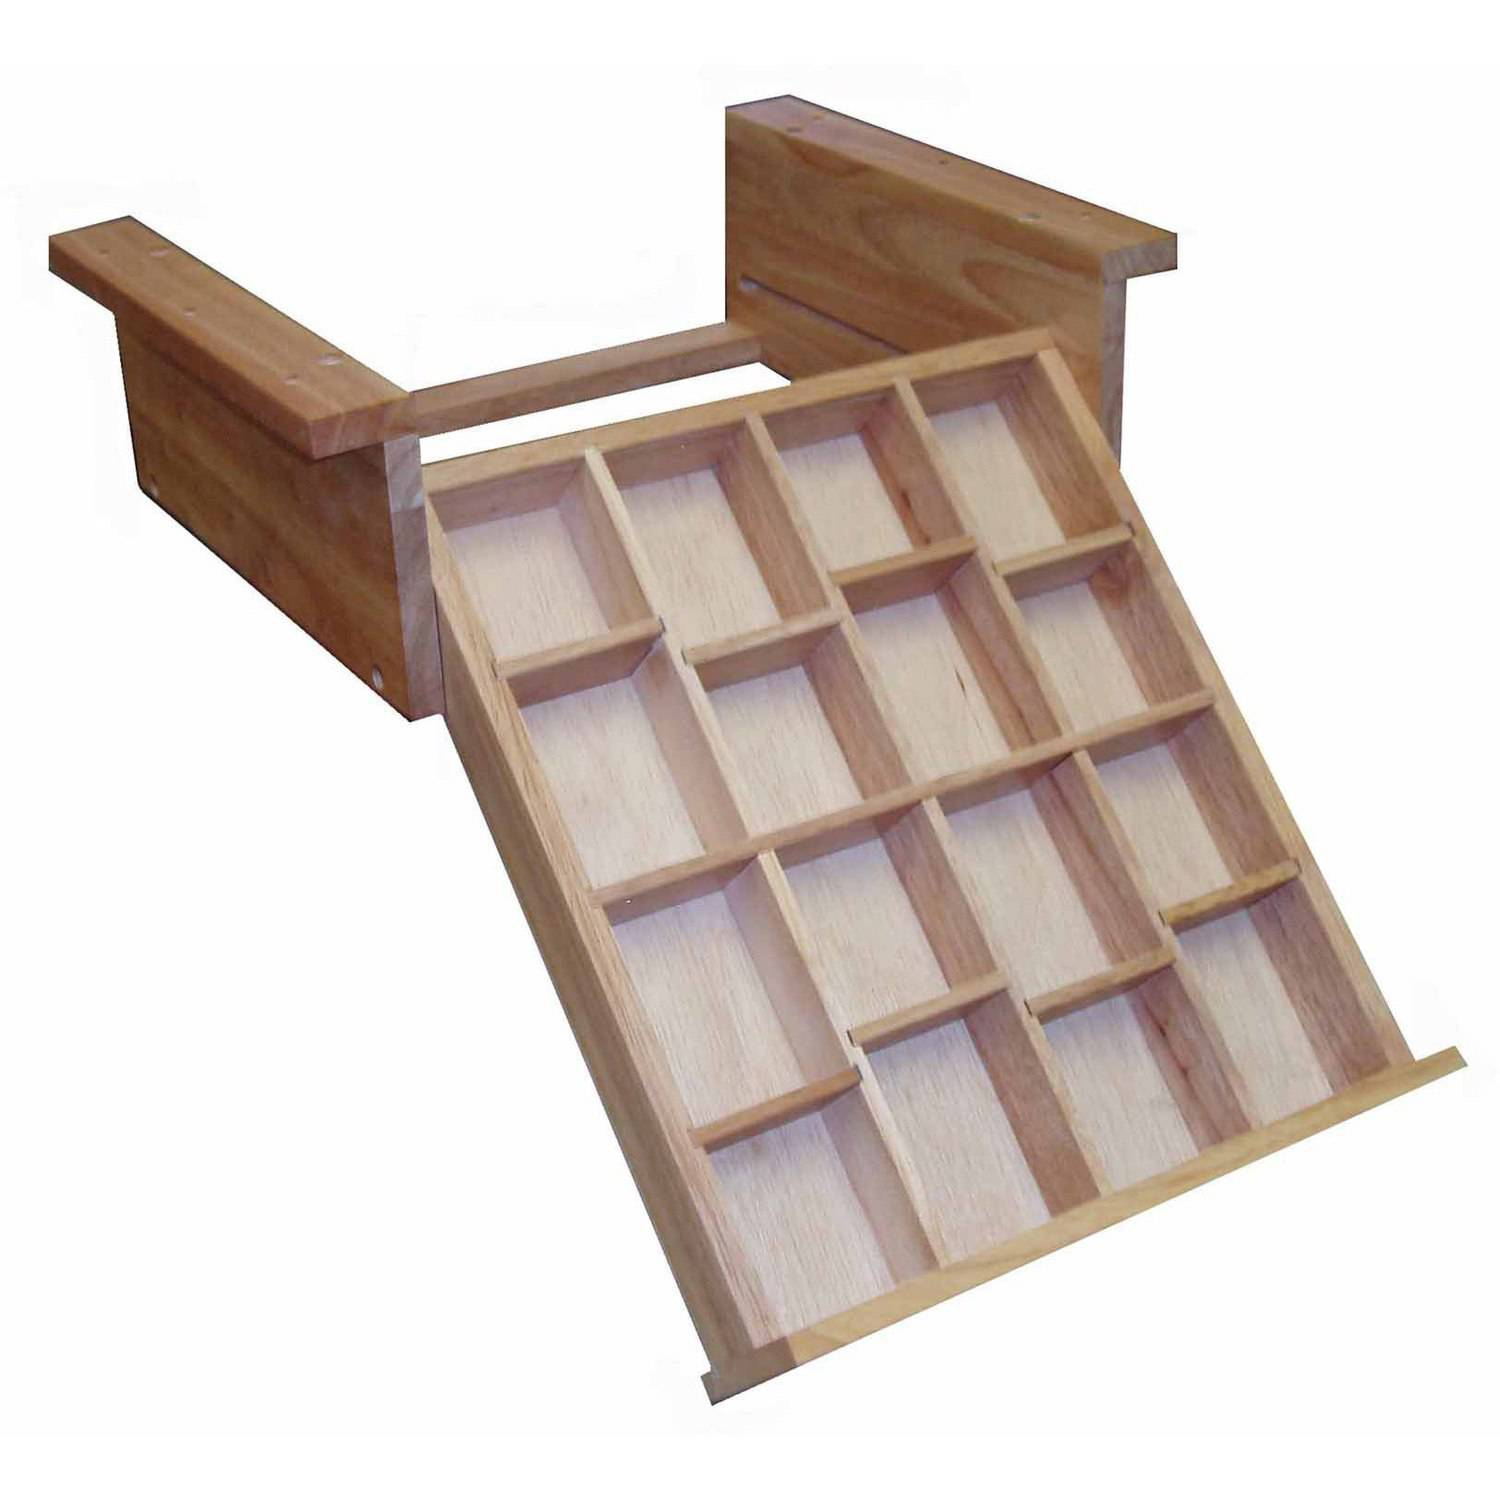 under cabinet spice rack wood the cabinet spice organizer walmart 27530